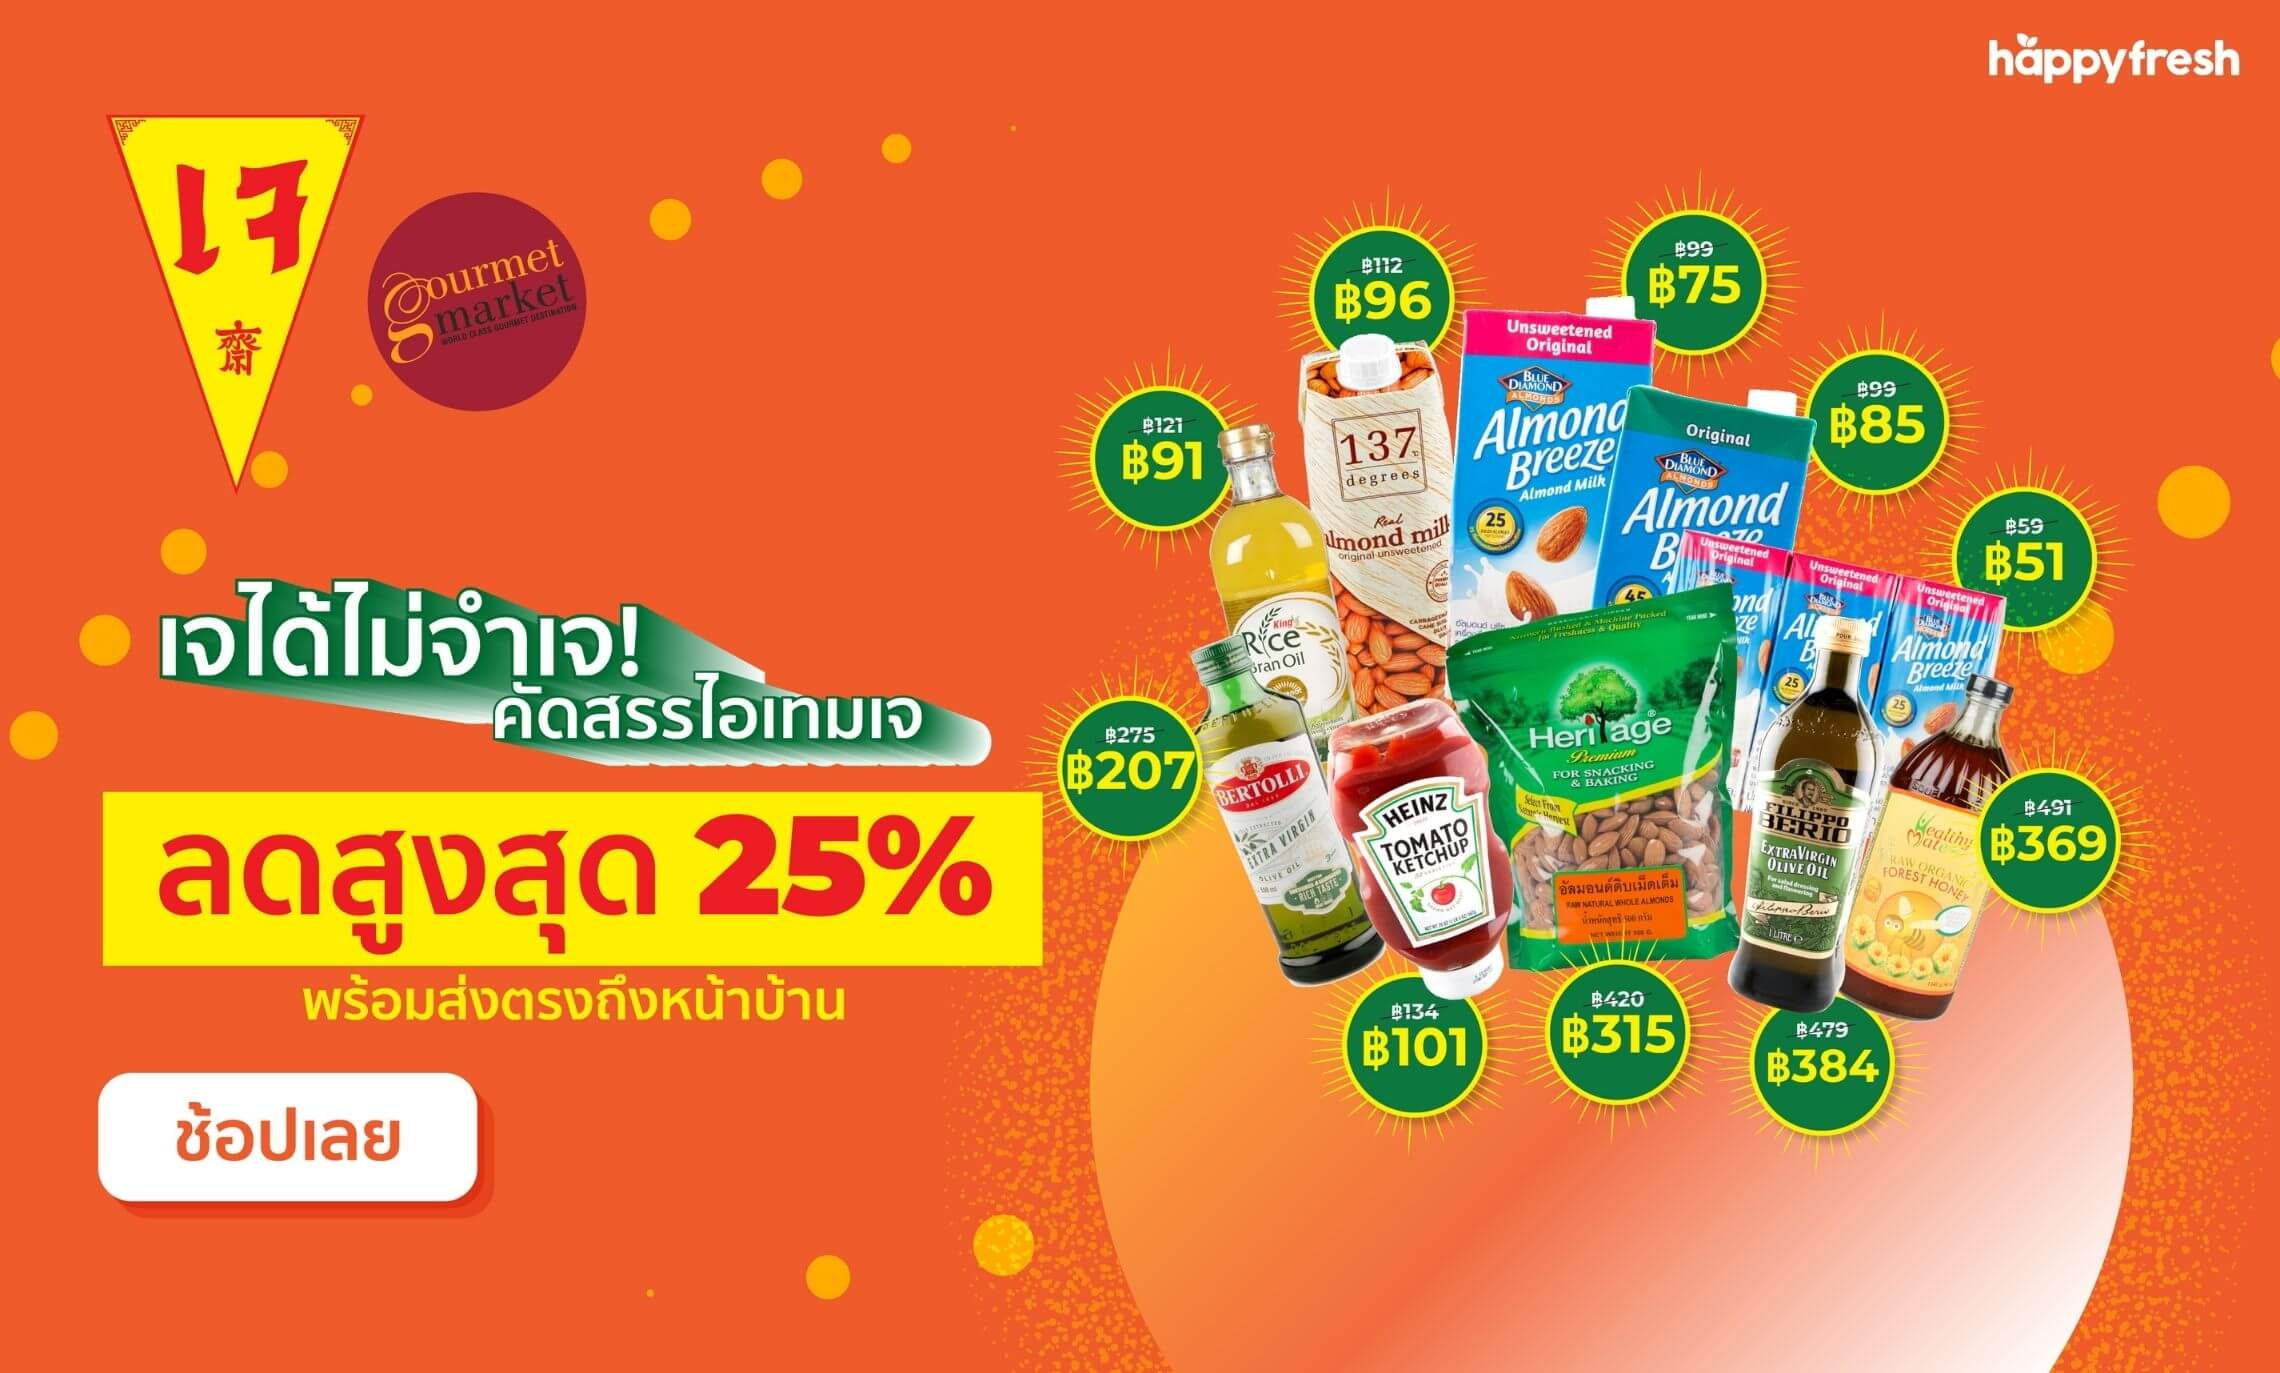 HappyFresh_Feature_Image_Vegetarian_Festival_Product_Discount_Gourmet